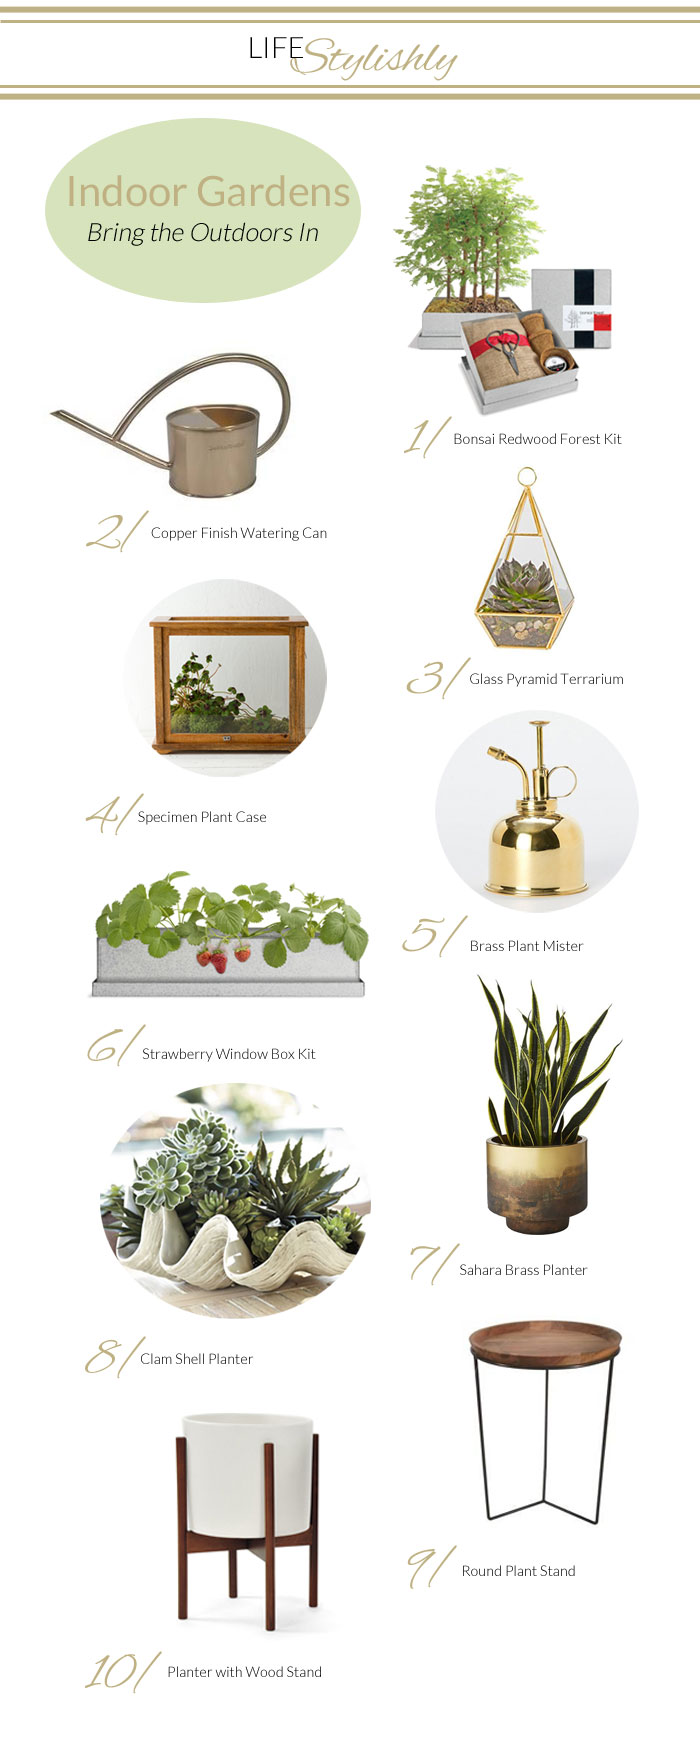 Indoor Container Garden, Planters, Plants and Terrarium Products